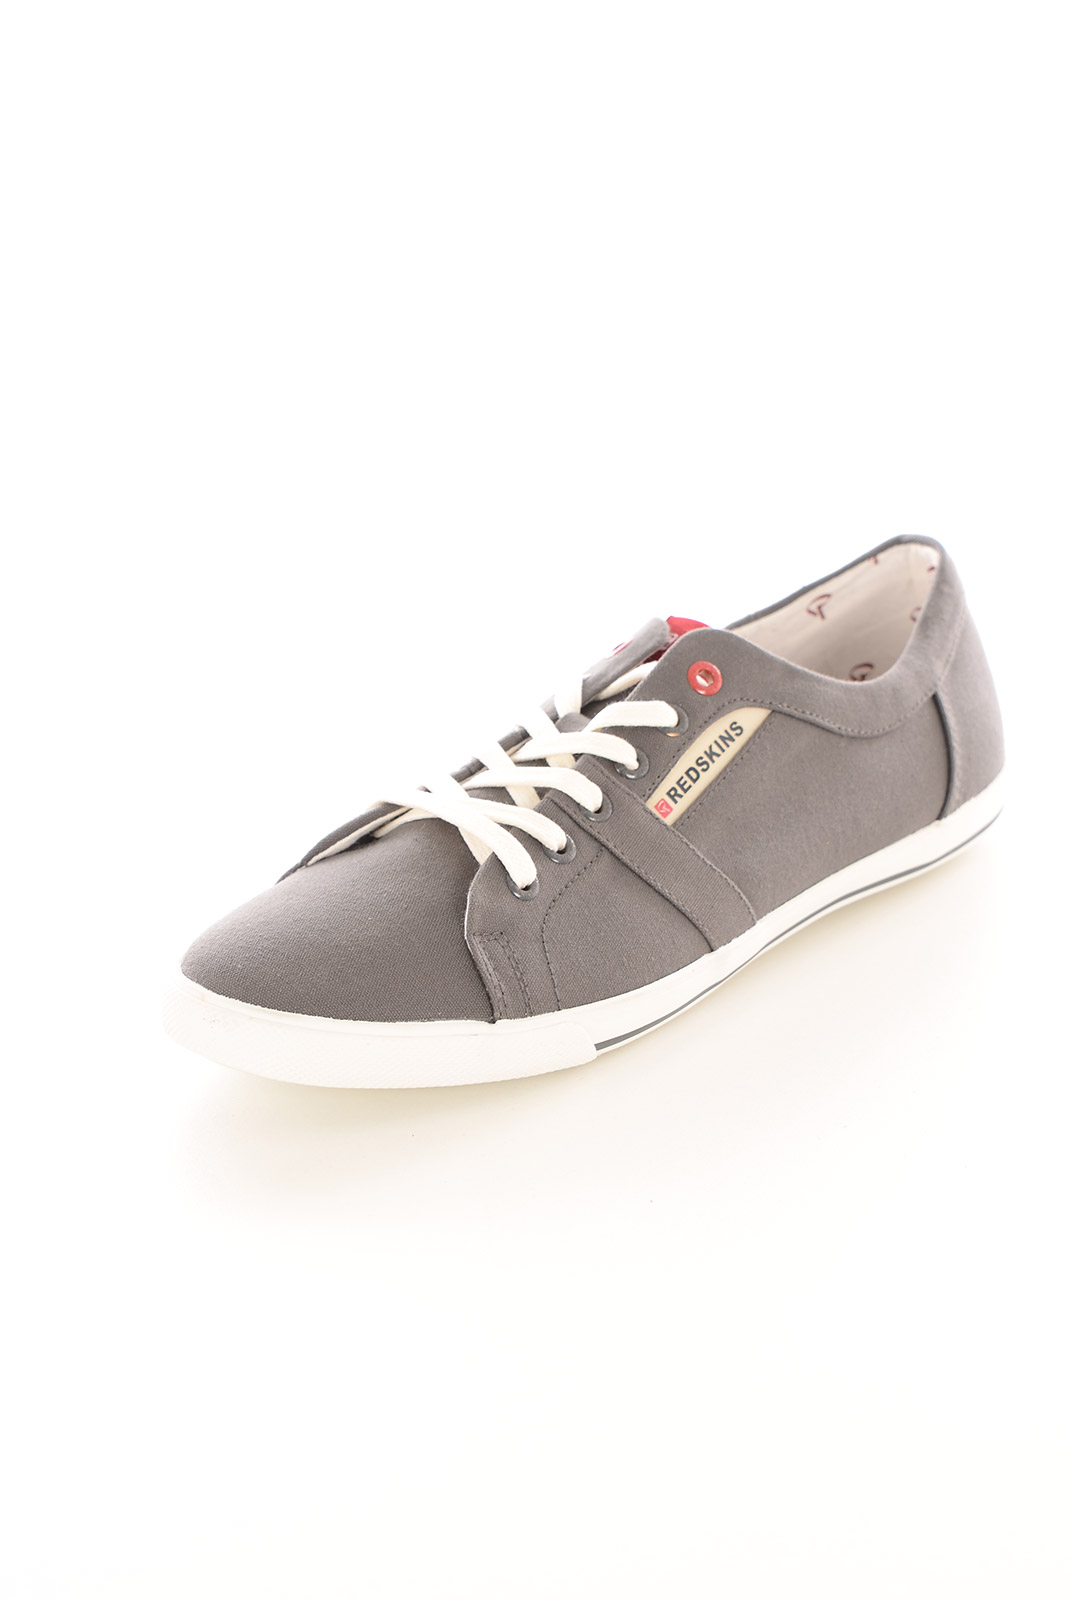 Chaussures   Redskins LUDOP ANTHRACITE